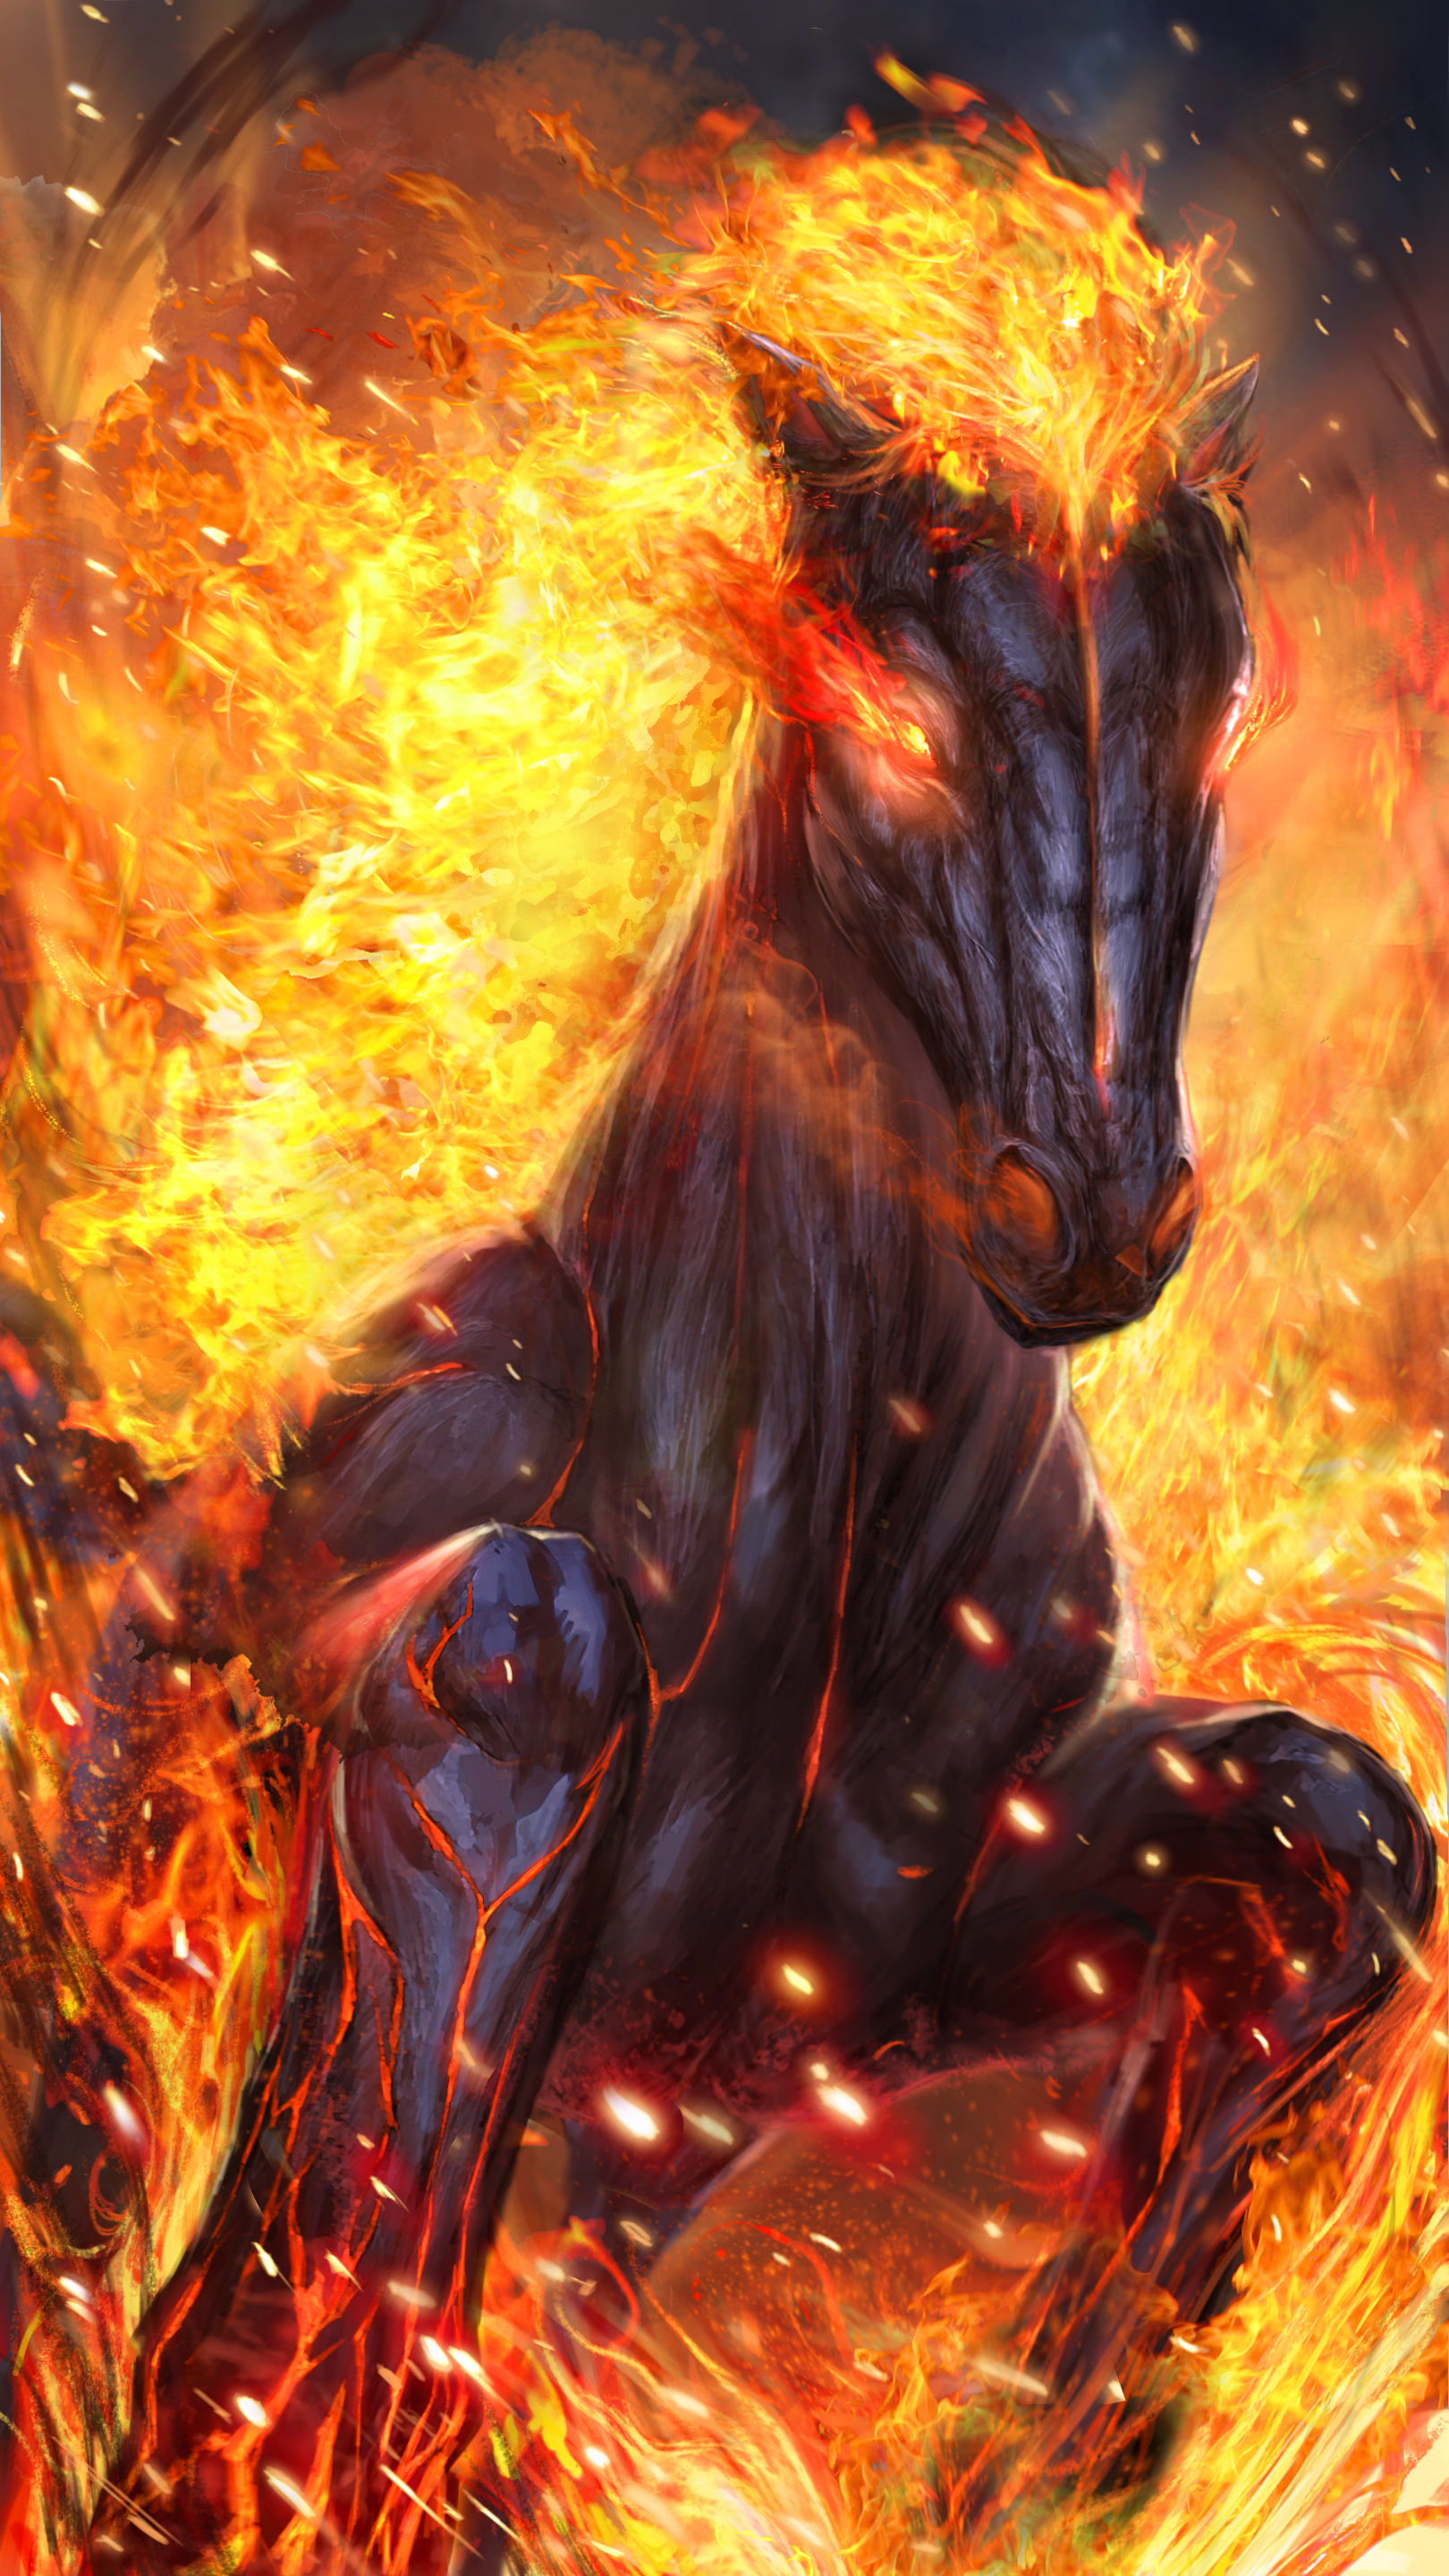 Hot Fire Horse Live Wallpaper